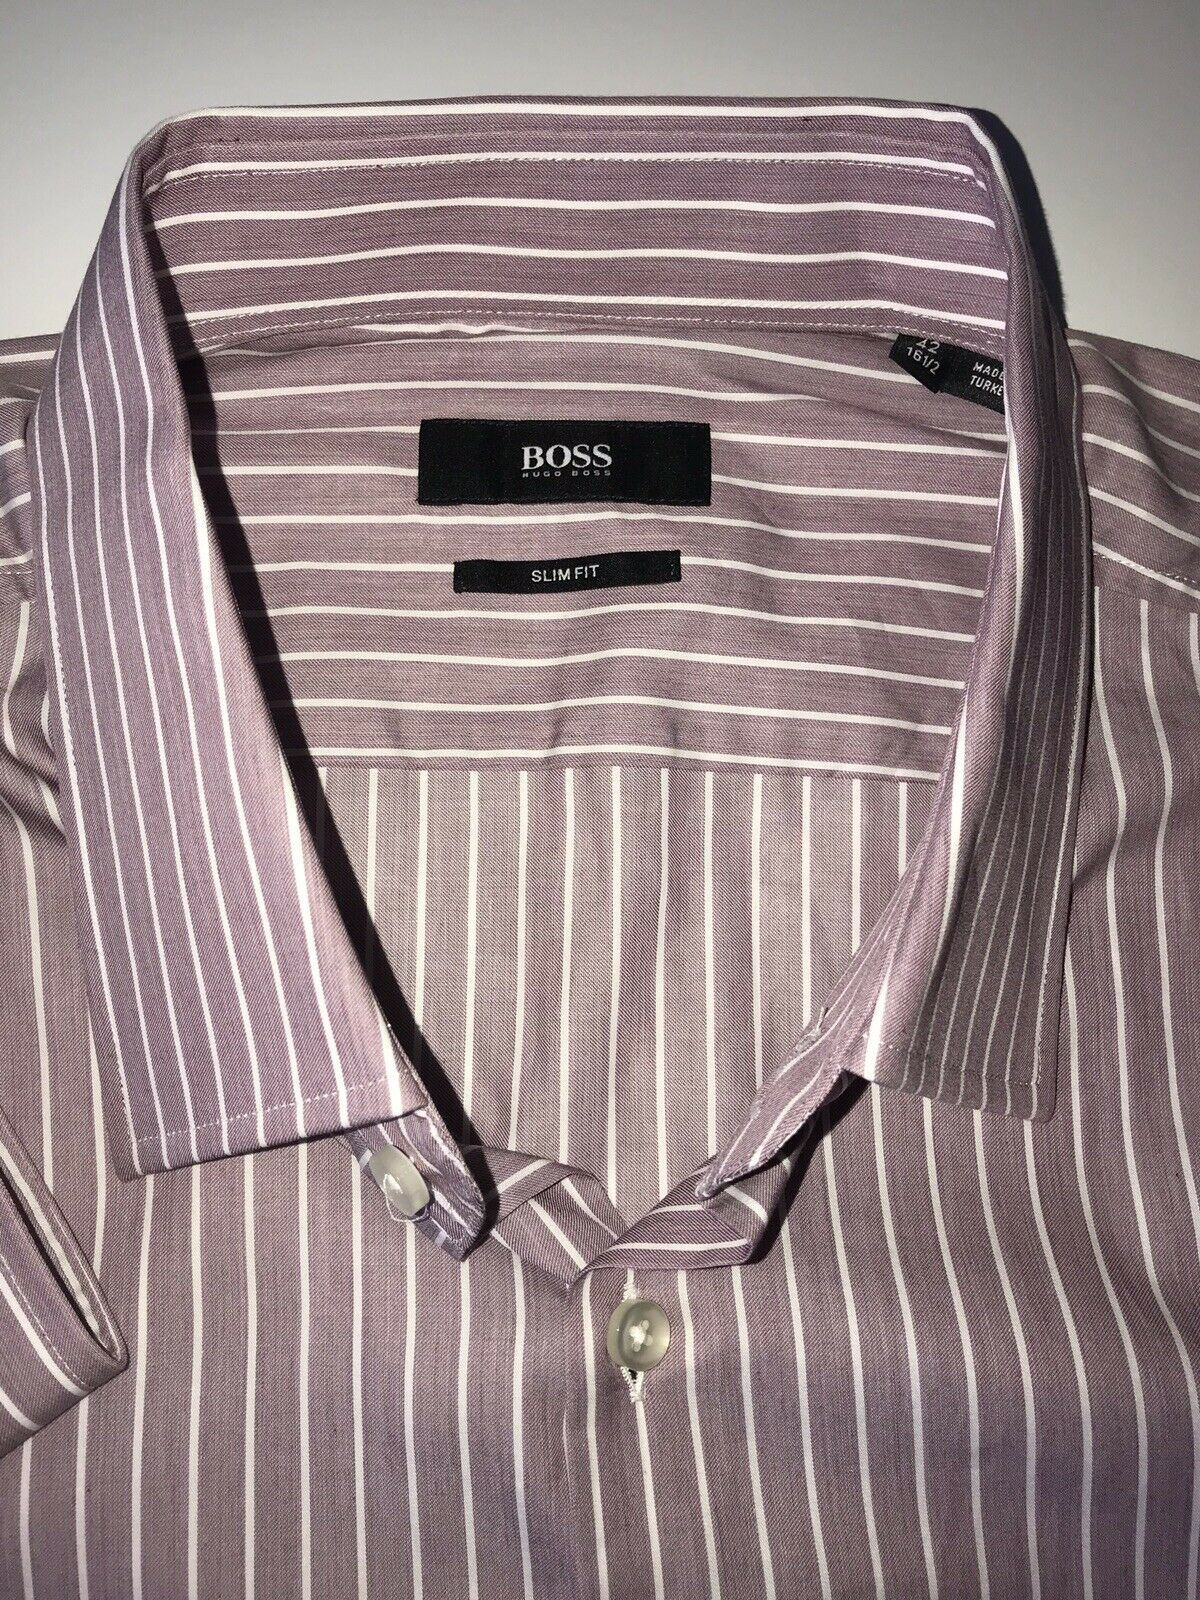 NWT $235 Hugo Boss Mens Jacob Slim Fit Tailored Red Dress Shirt Size 42/16.5